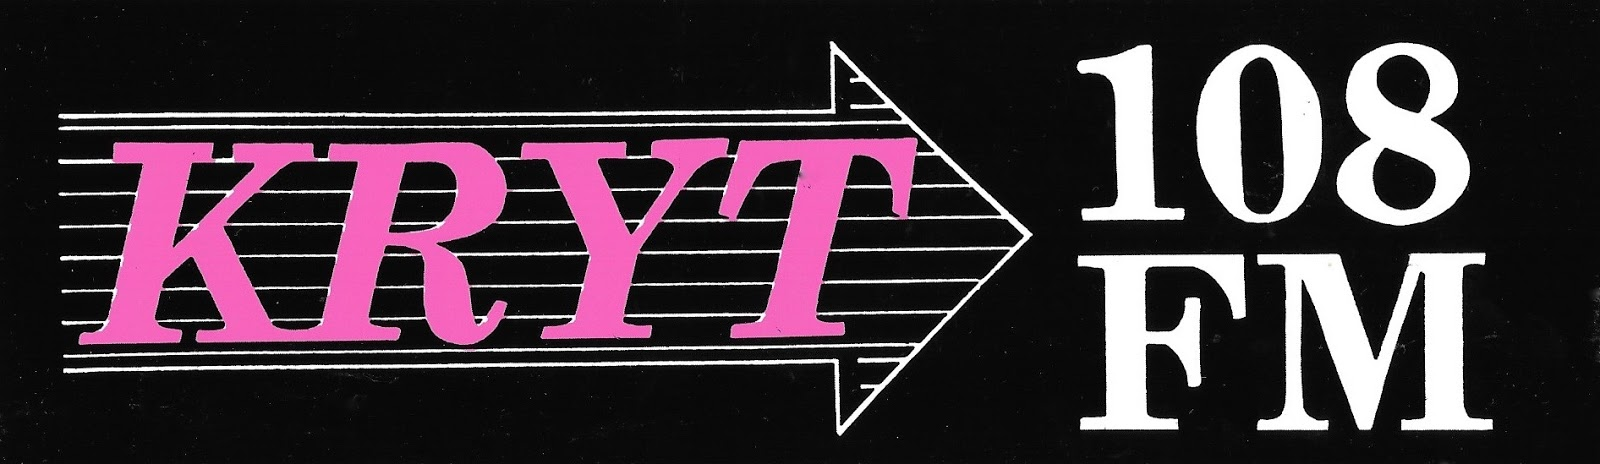 KRYT A Reference To 1079 FM Being On The Far Right Of Radio Dial Was Top 40 Outlet In Pueblo Colorado Starting 1986 Station Later Became